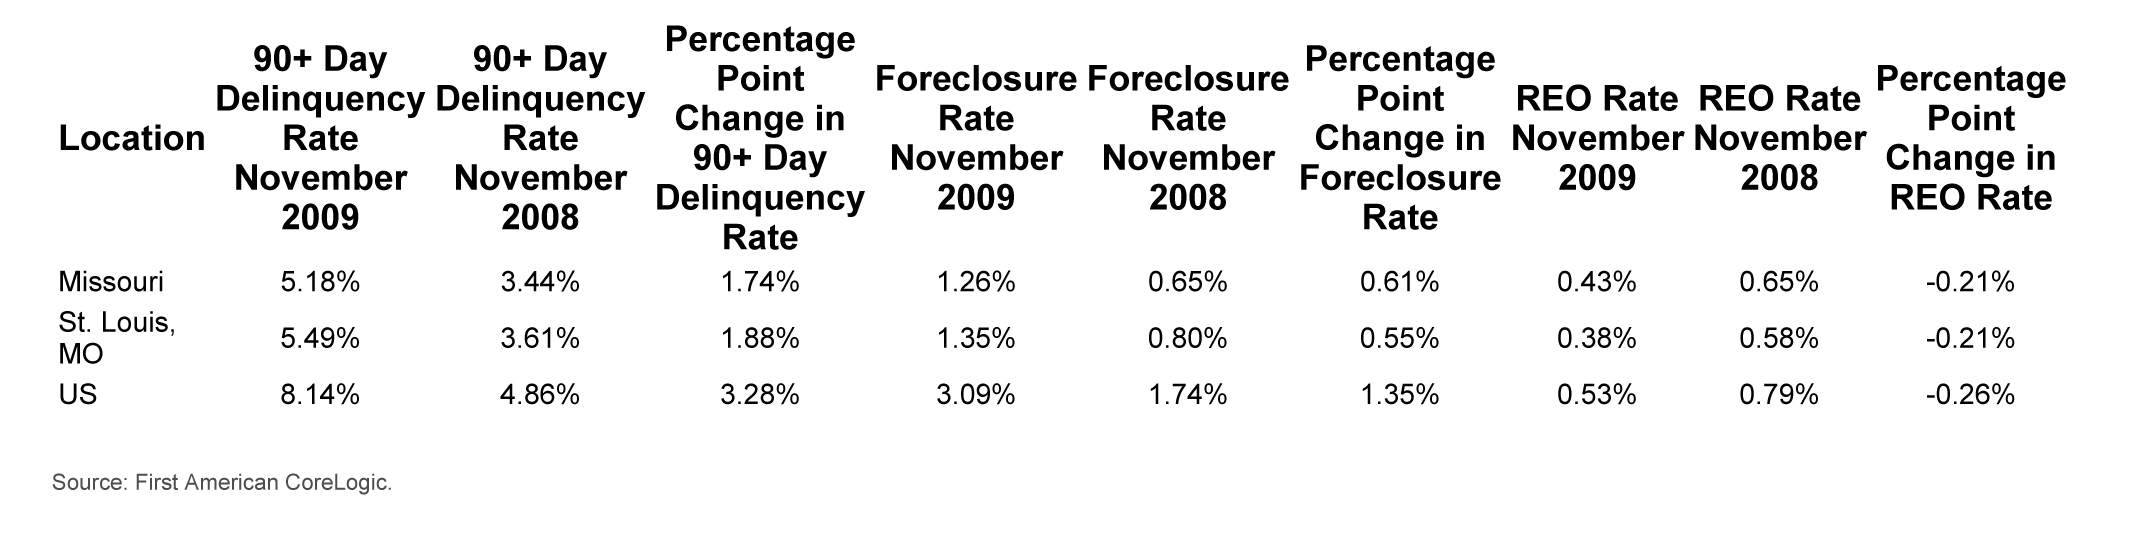 Corelogic Foreclosure and Delinquencies for St Louis, MO November 2009